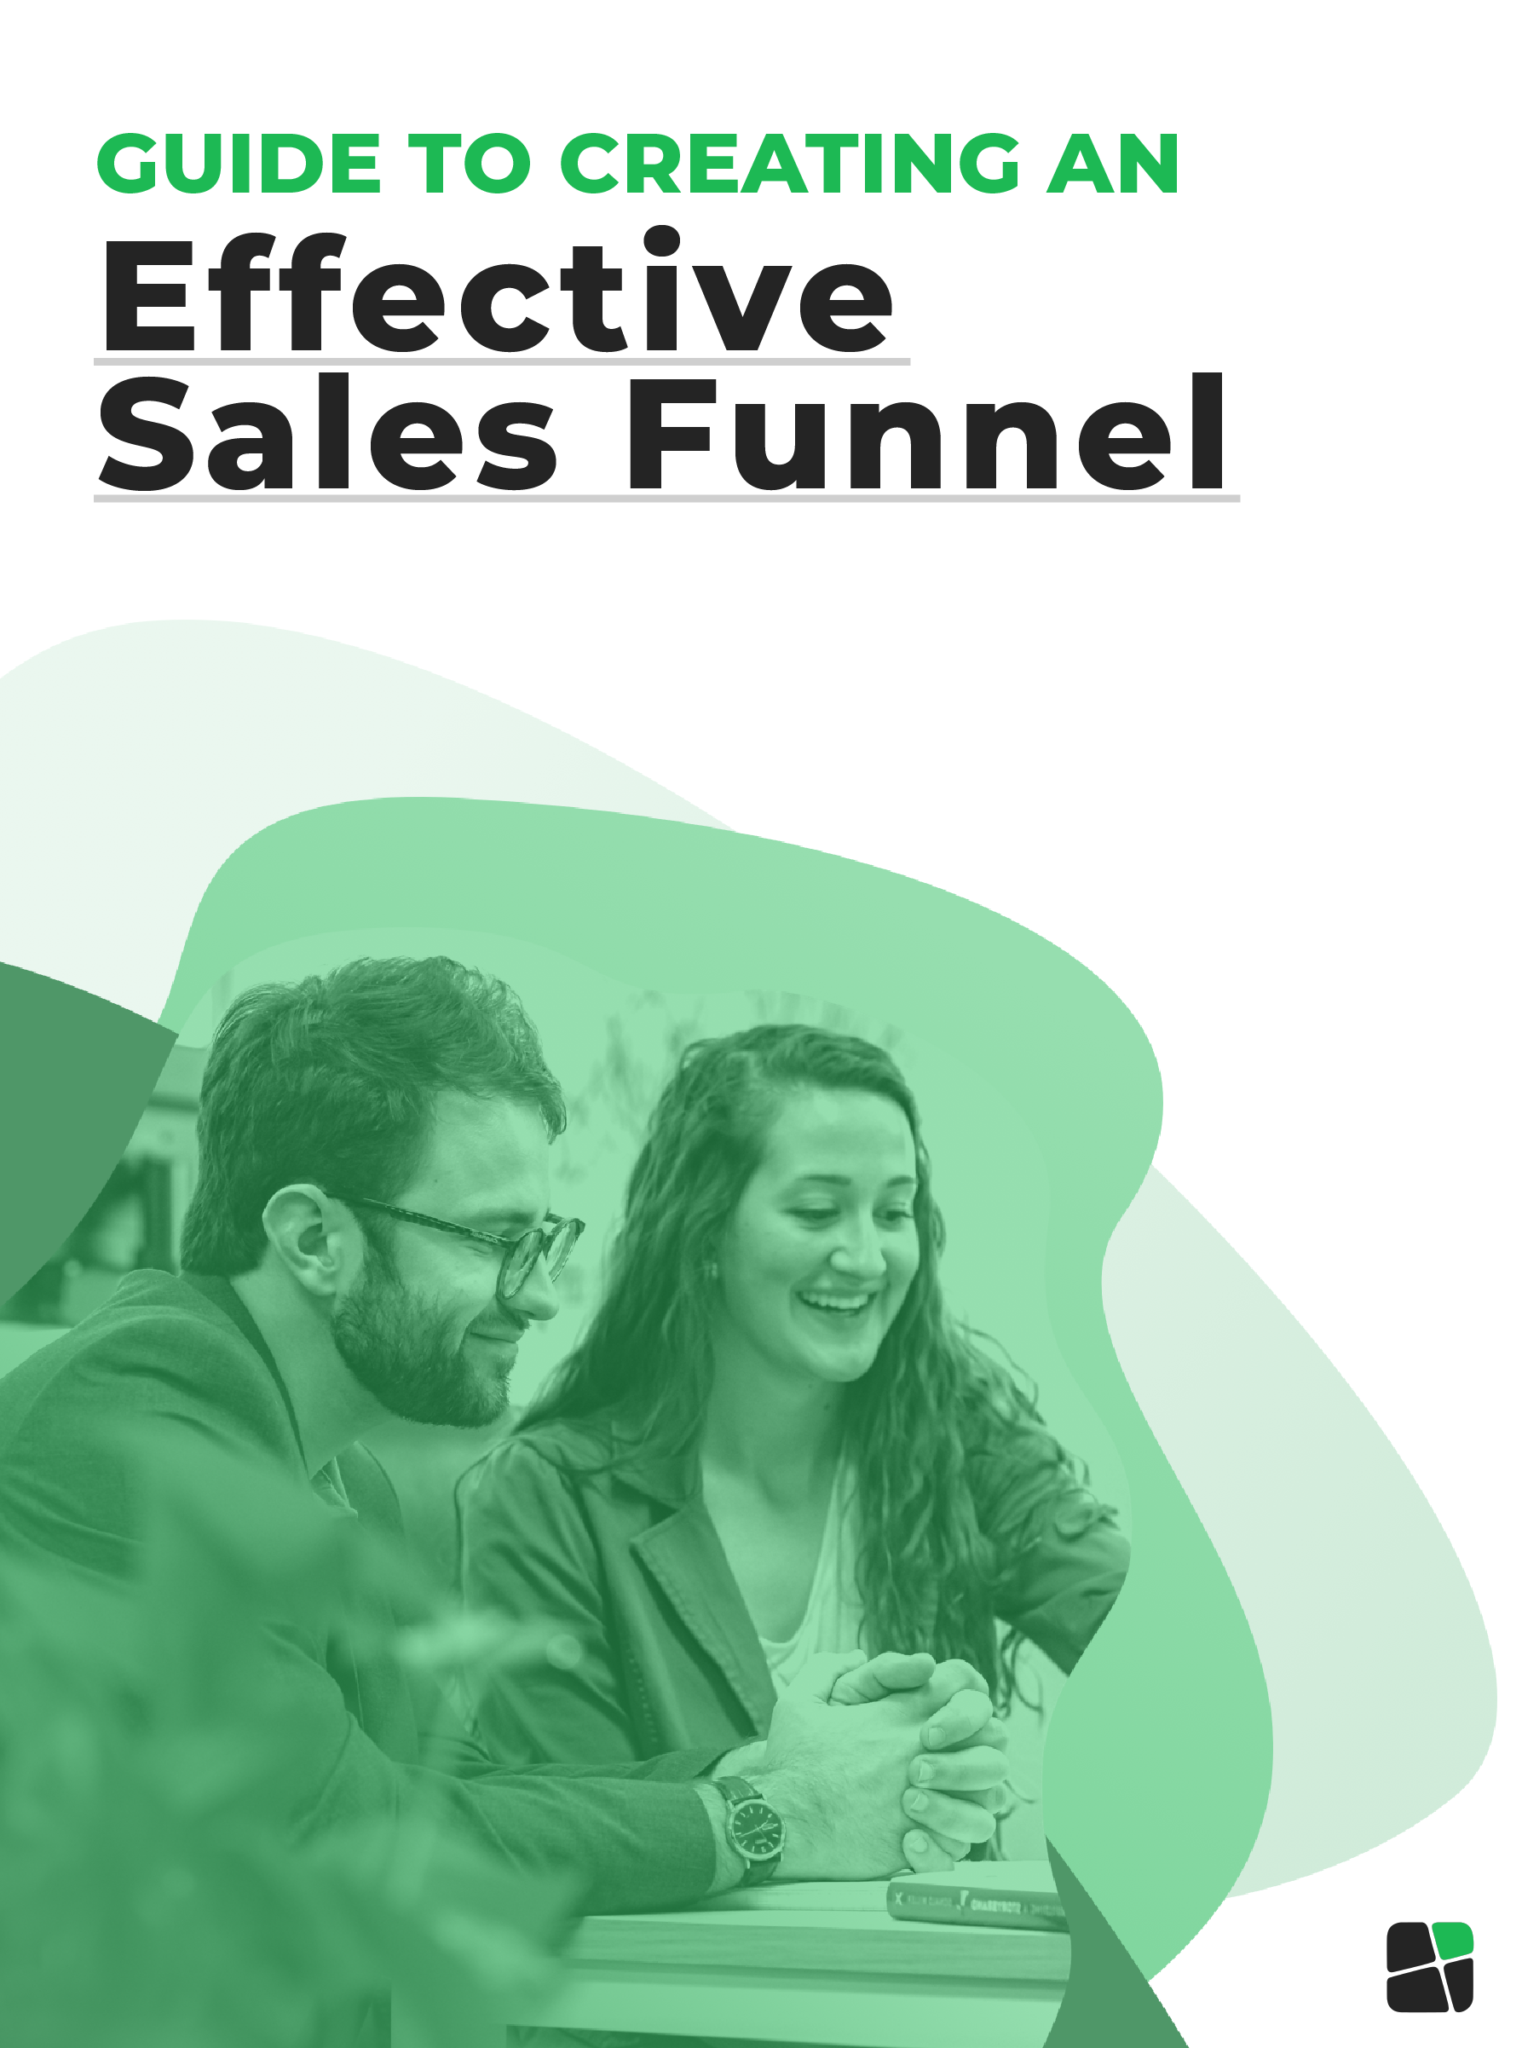 Sales Funnel_Ebook Cover_2020NewDesign@3x